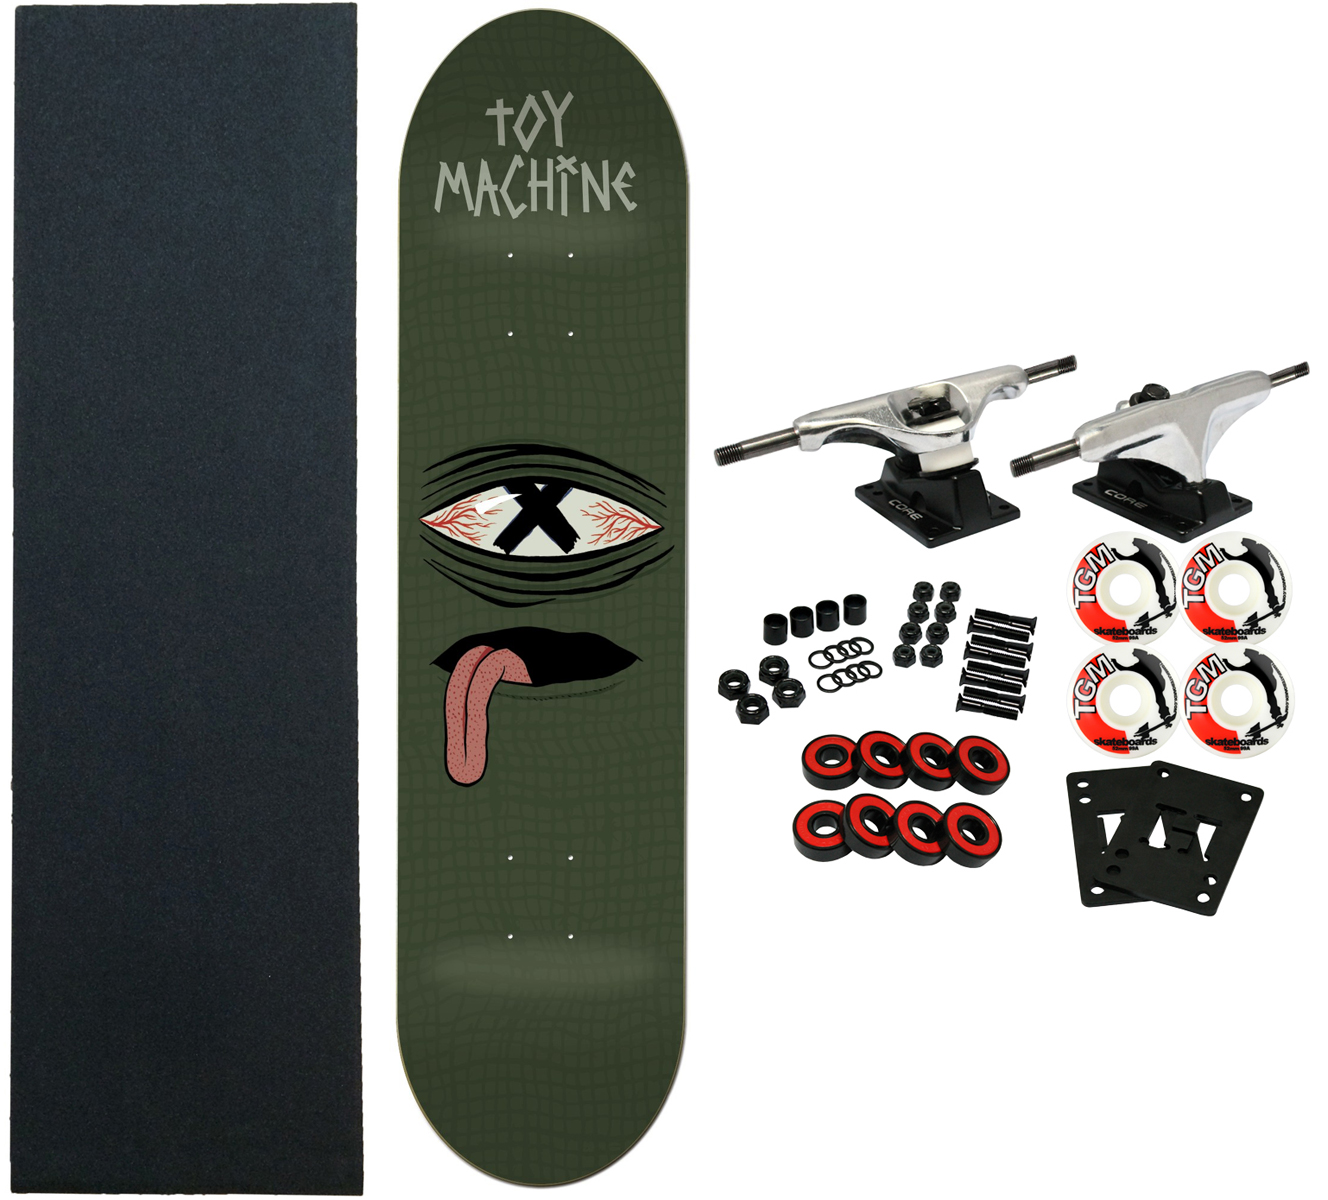 Toy Machine Skateboard Complete Crossed Out 80 742091275669 Ebay Deck Sect Eye Orange 350000 Positive Feedback With Over 20000 Items In Stock We Are Experts On All Aspects Of Skateboarding Longboarding Customer Services